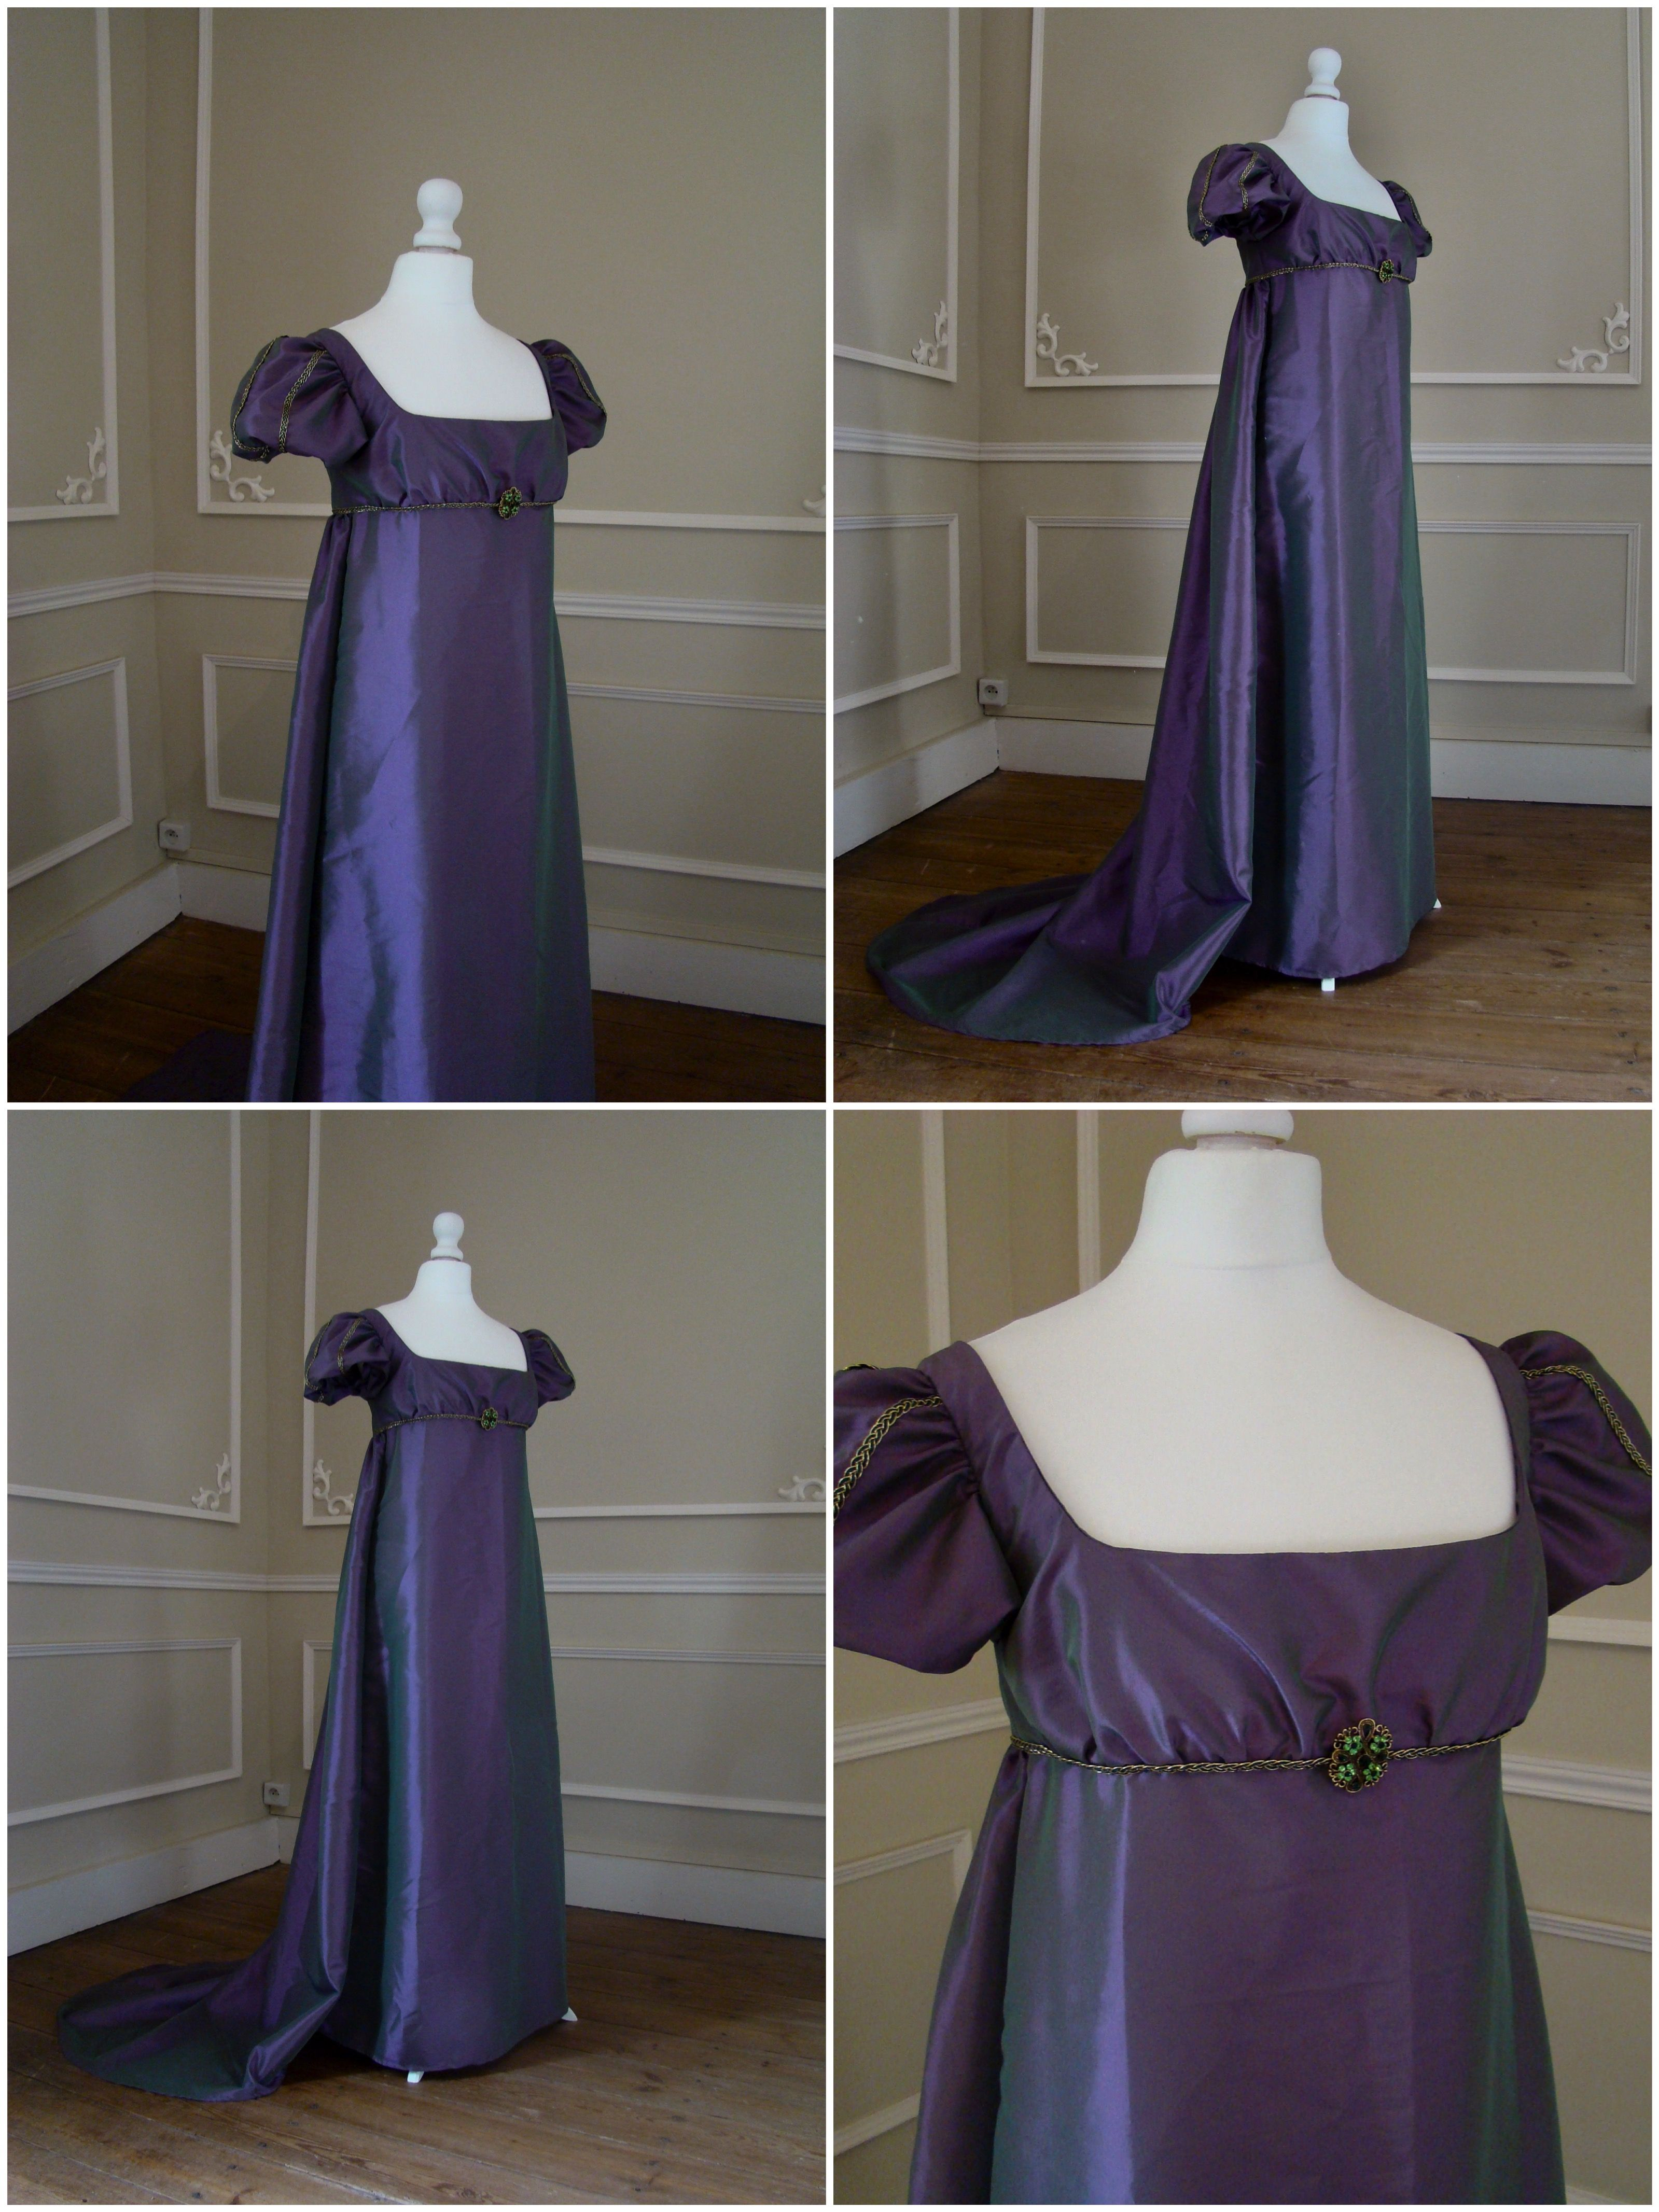 eddc3b7e1f7 Robe de bal Régence 1er empire en taffetas violet à reflets verts. Ball  gown of regency period in purple taffeta with green reflections.